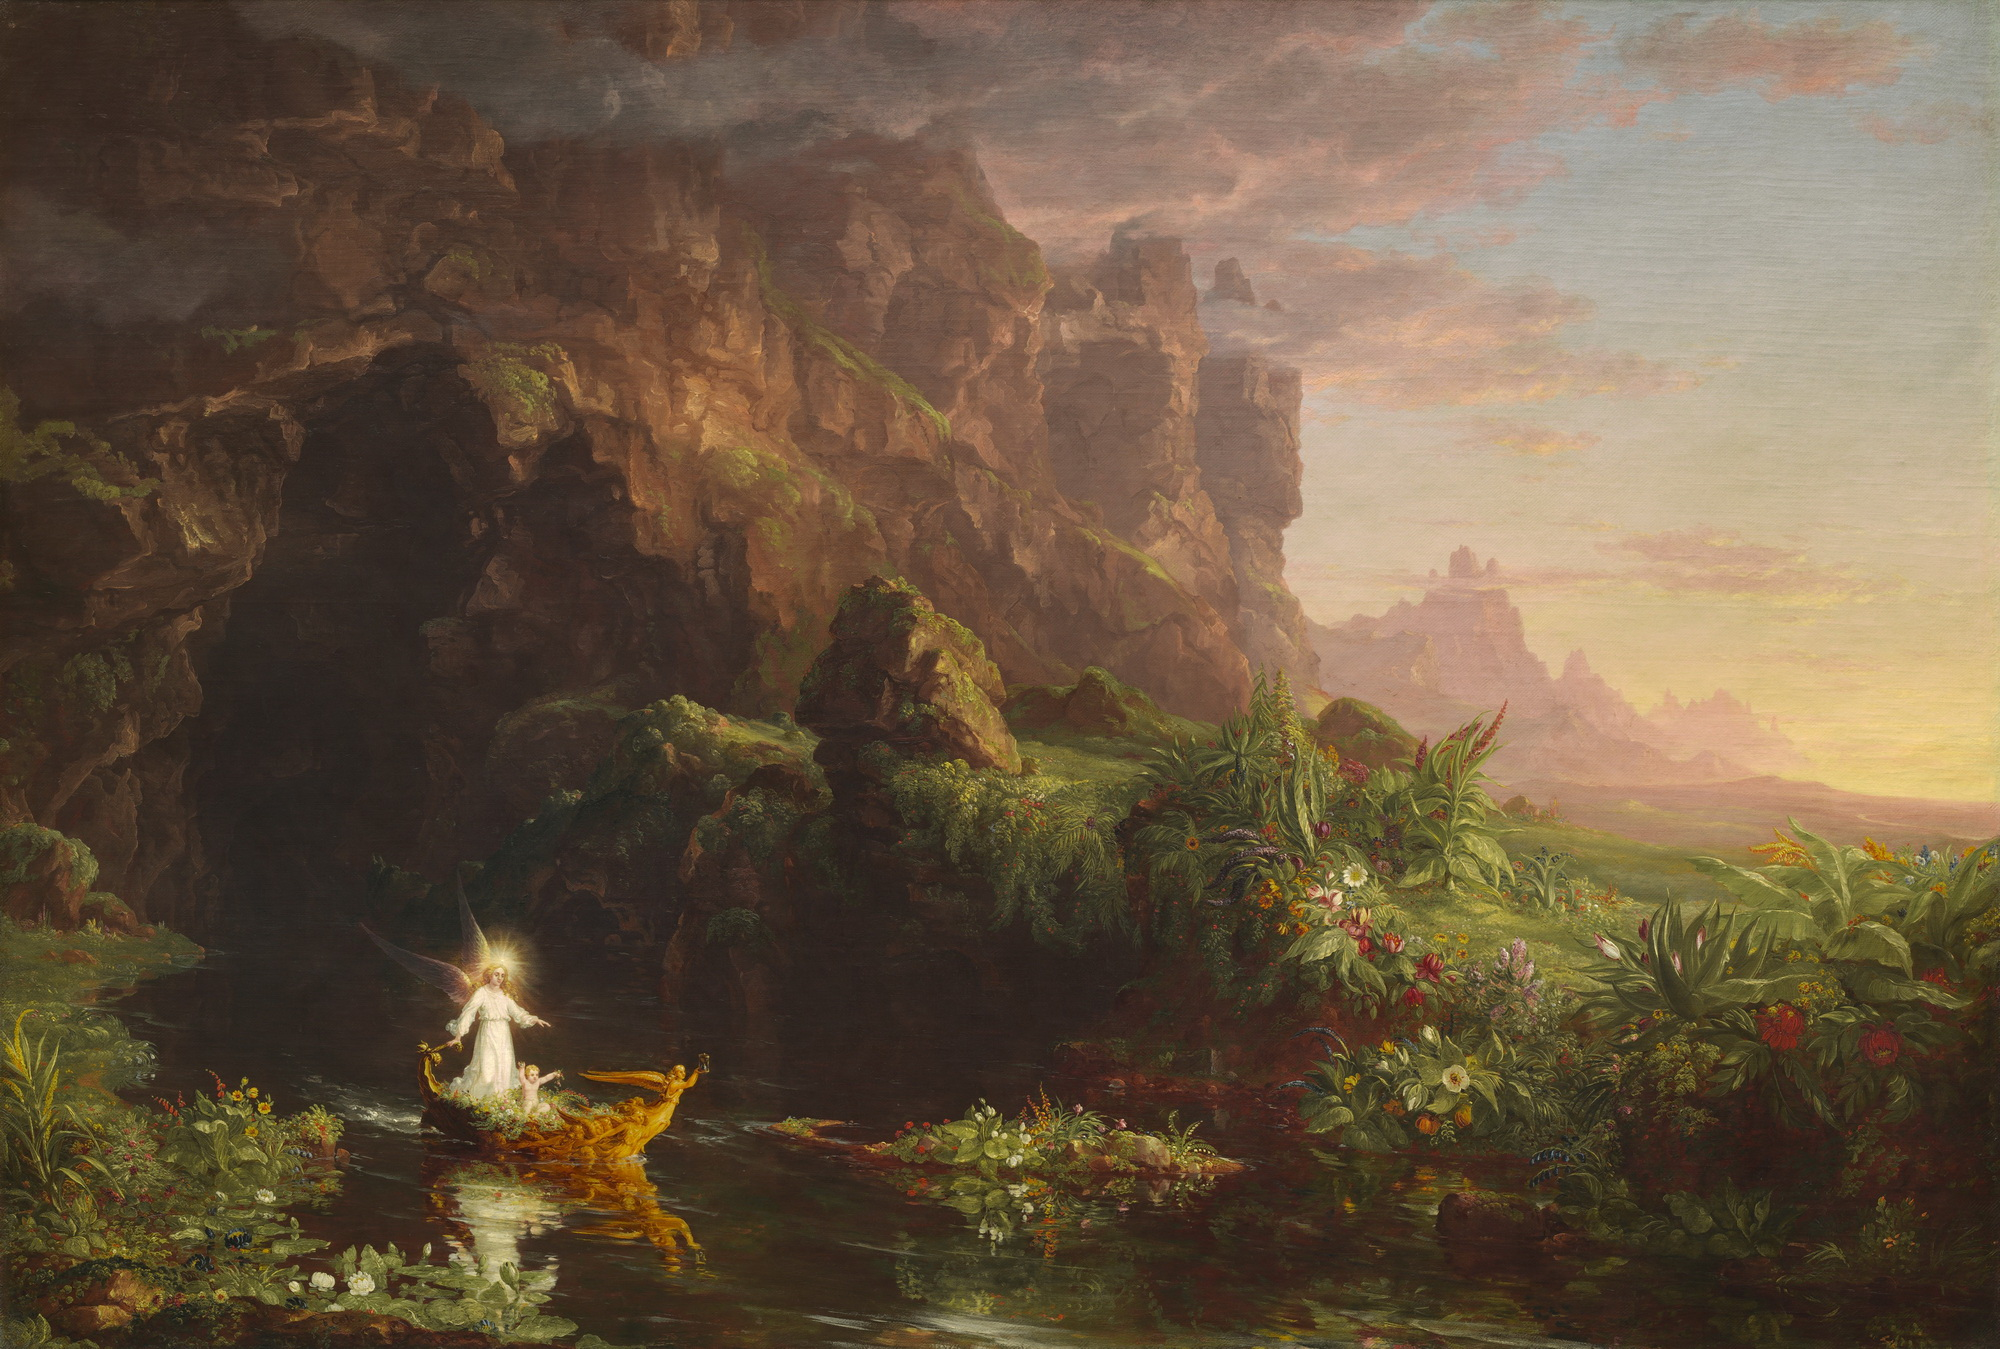 Thomas Cole - The Voyage of Life Childhood 1842-2000